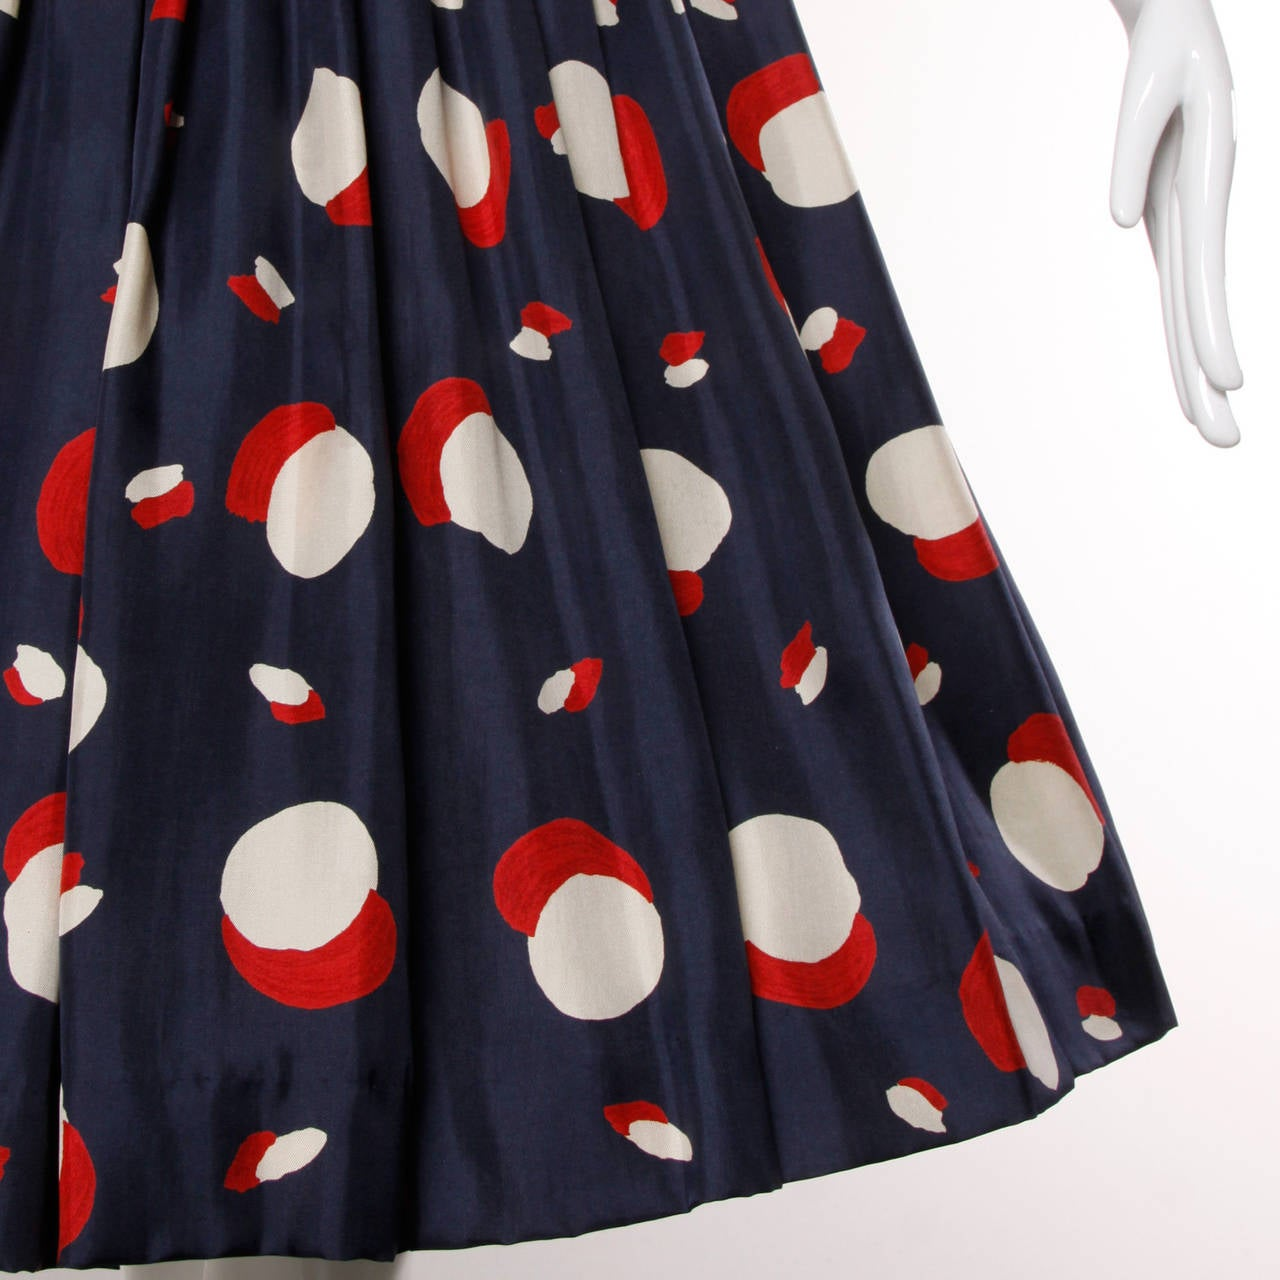 1950s New Look Vintage Polka Dot Print Silk Dress with a Full Sweep 4